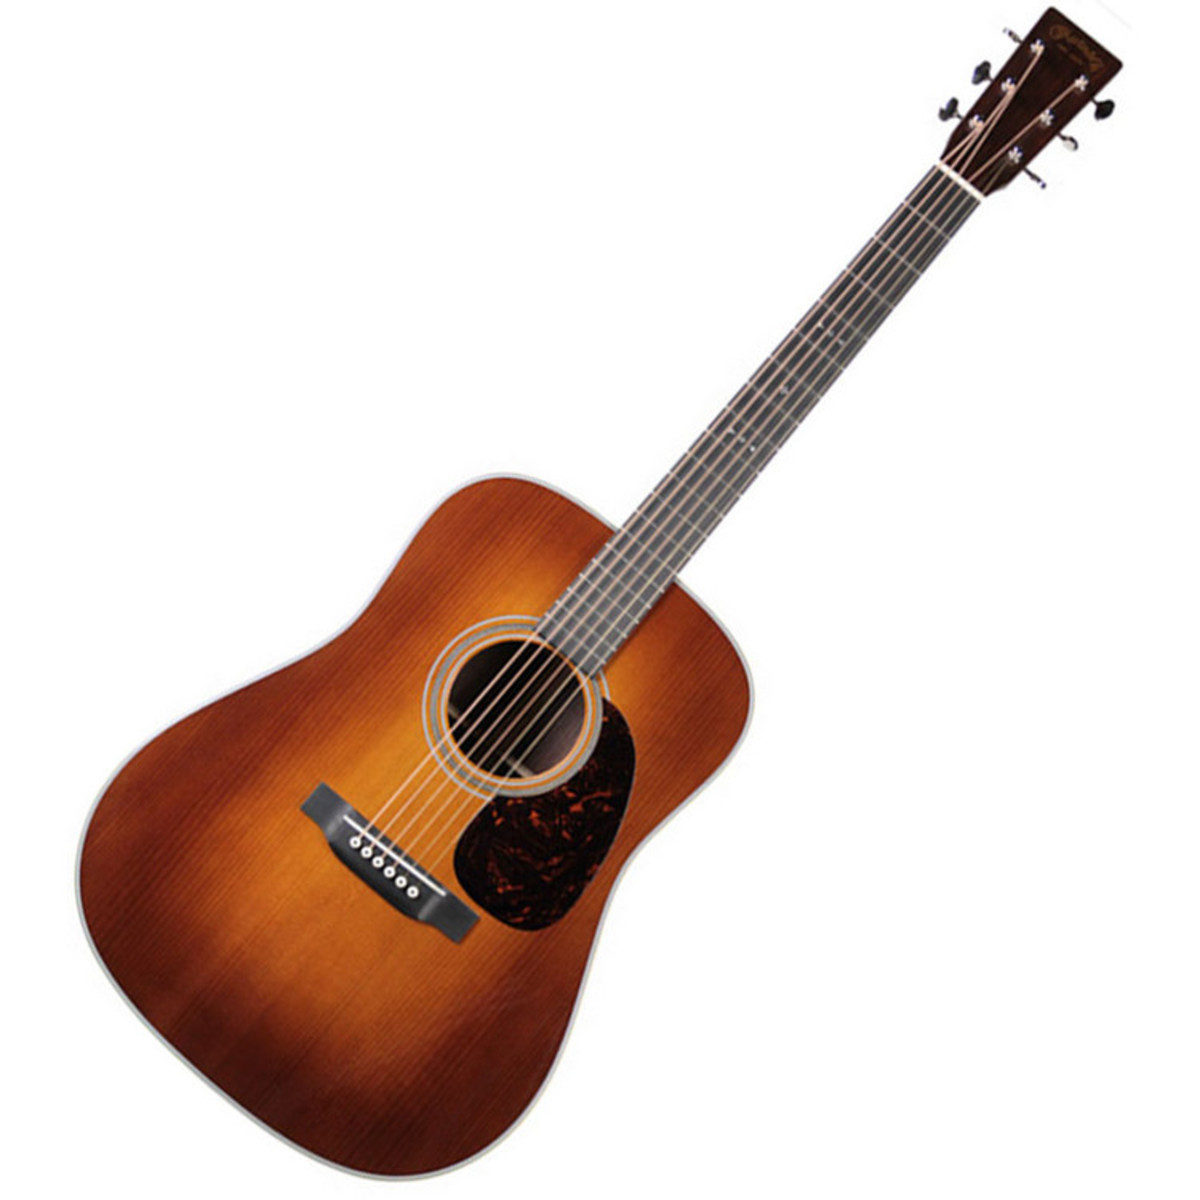 martin d 28 dreadnought acoustic guitar ambertone at. Black Bedroom Furniture Sets. Home Design Ideas